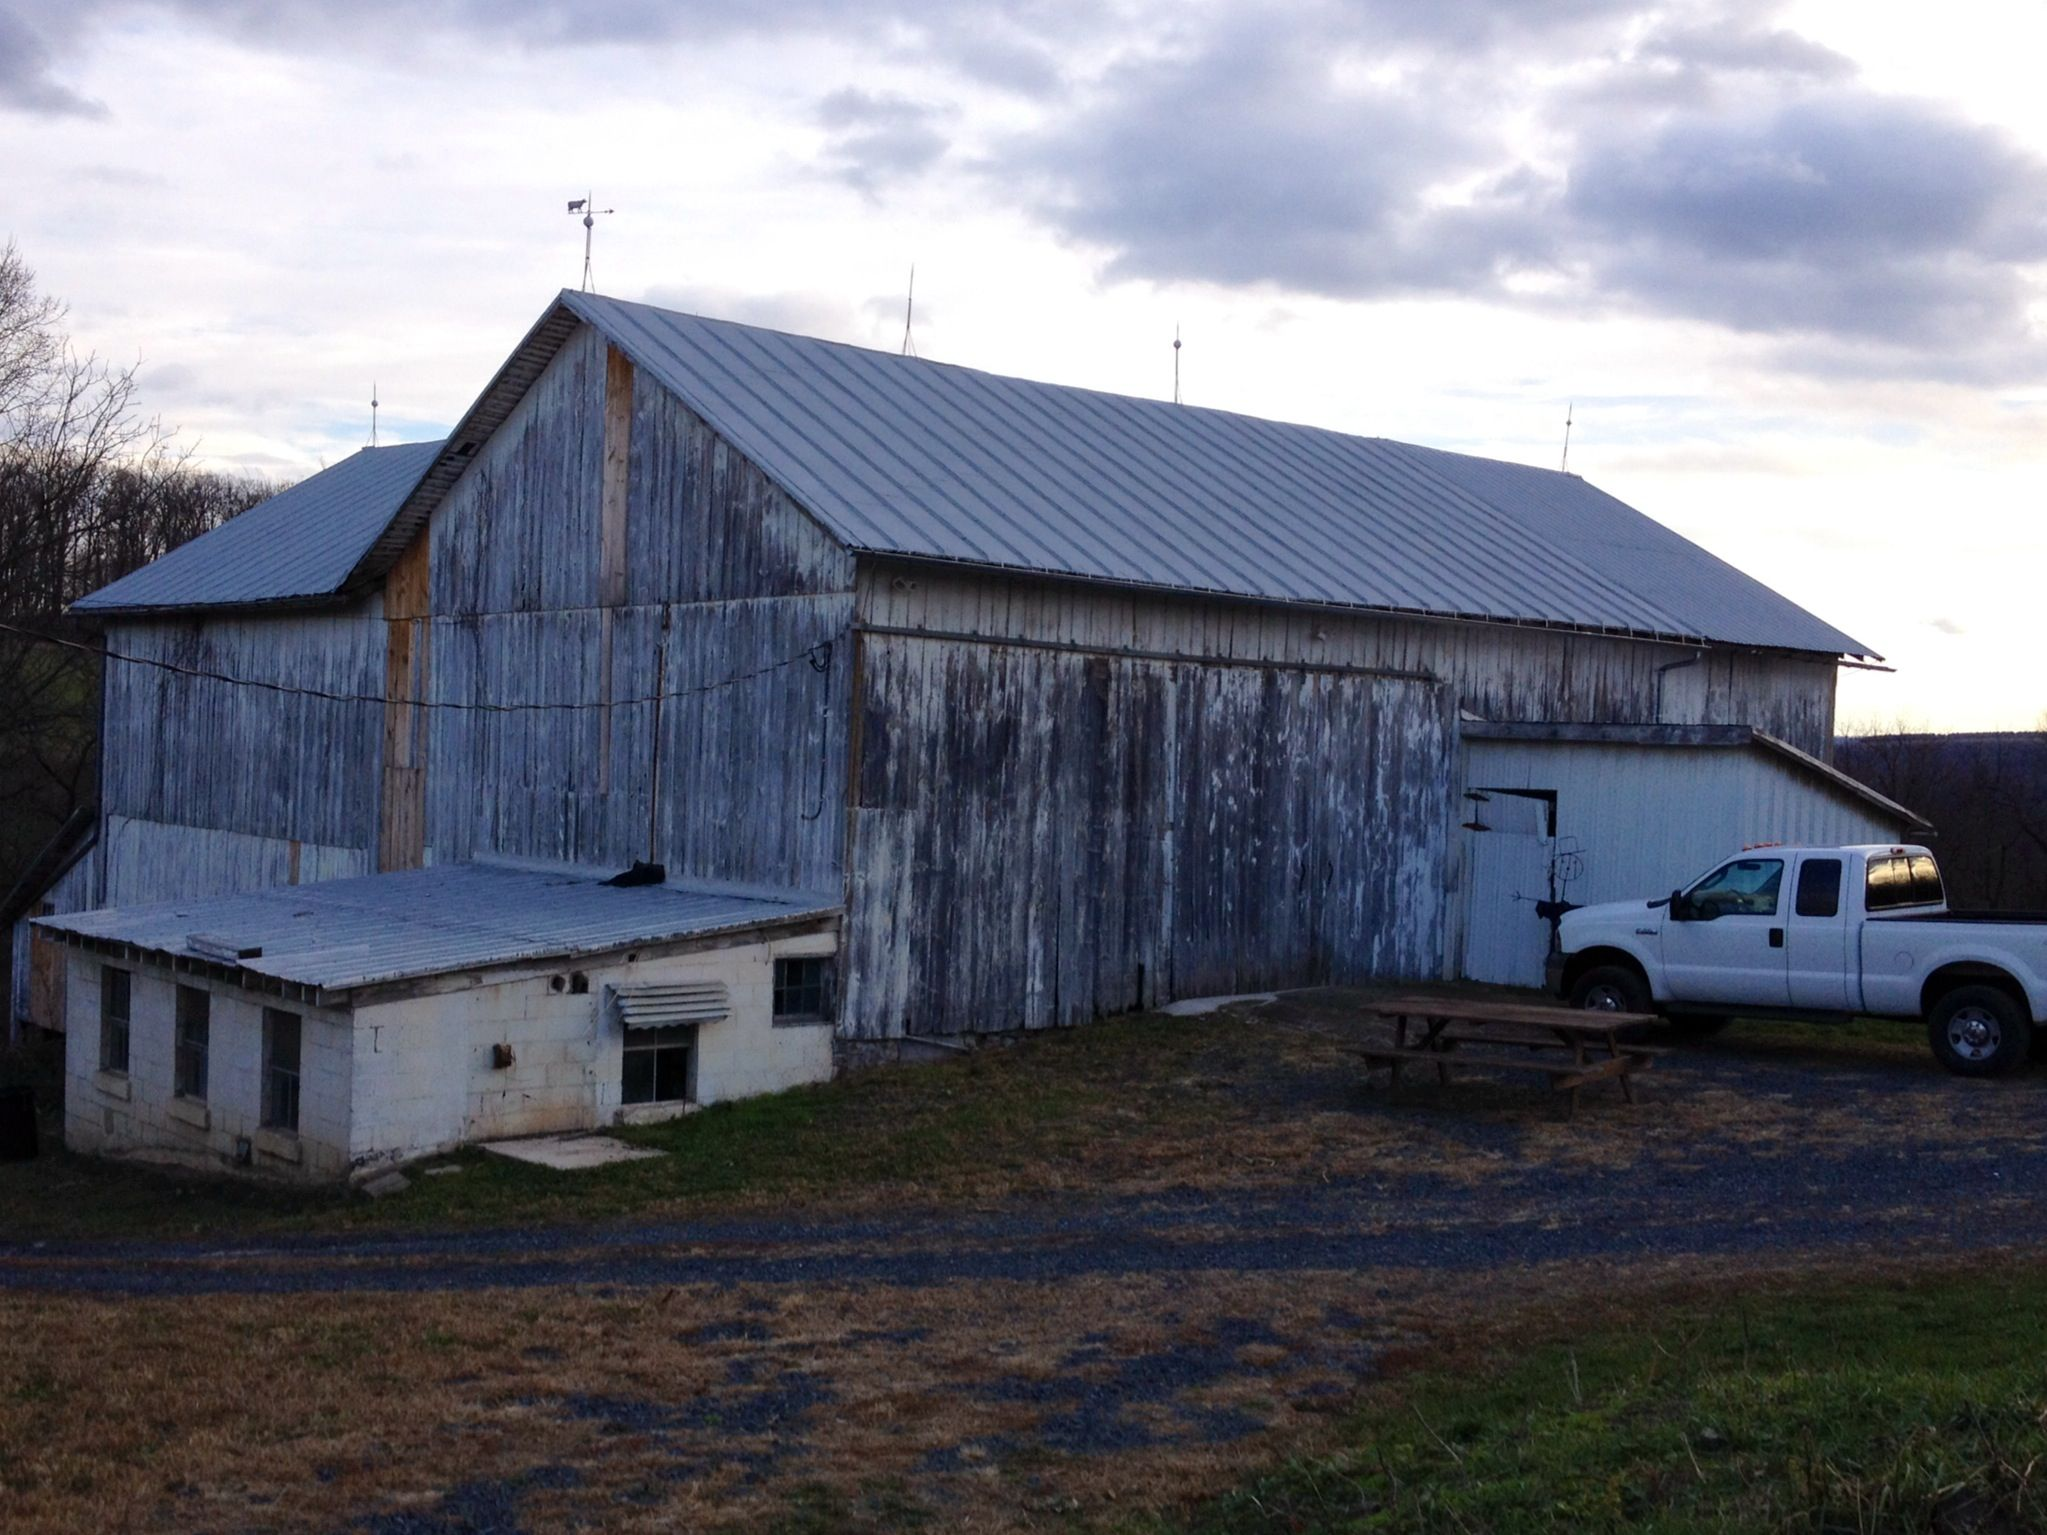 Pinnacle View Farms presents... The Barn! A great place for your rustic weddings and events